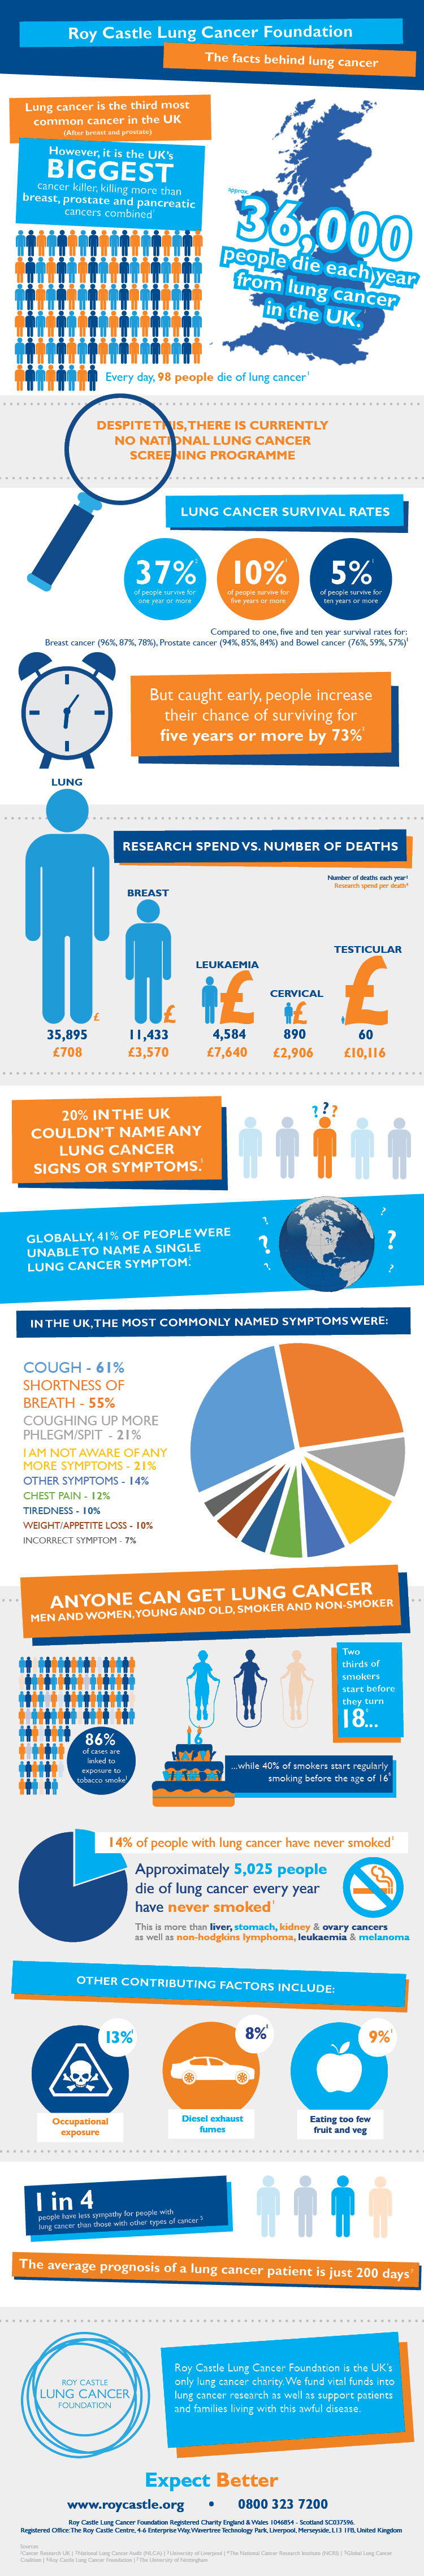 Lung cancer statistics across the UK